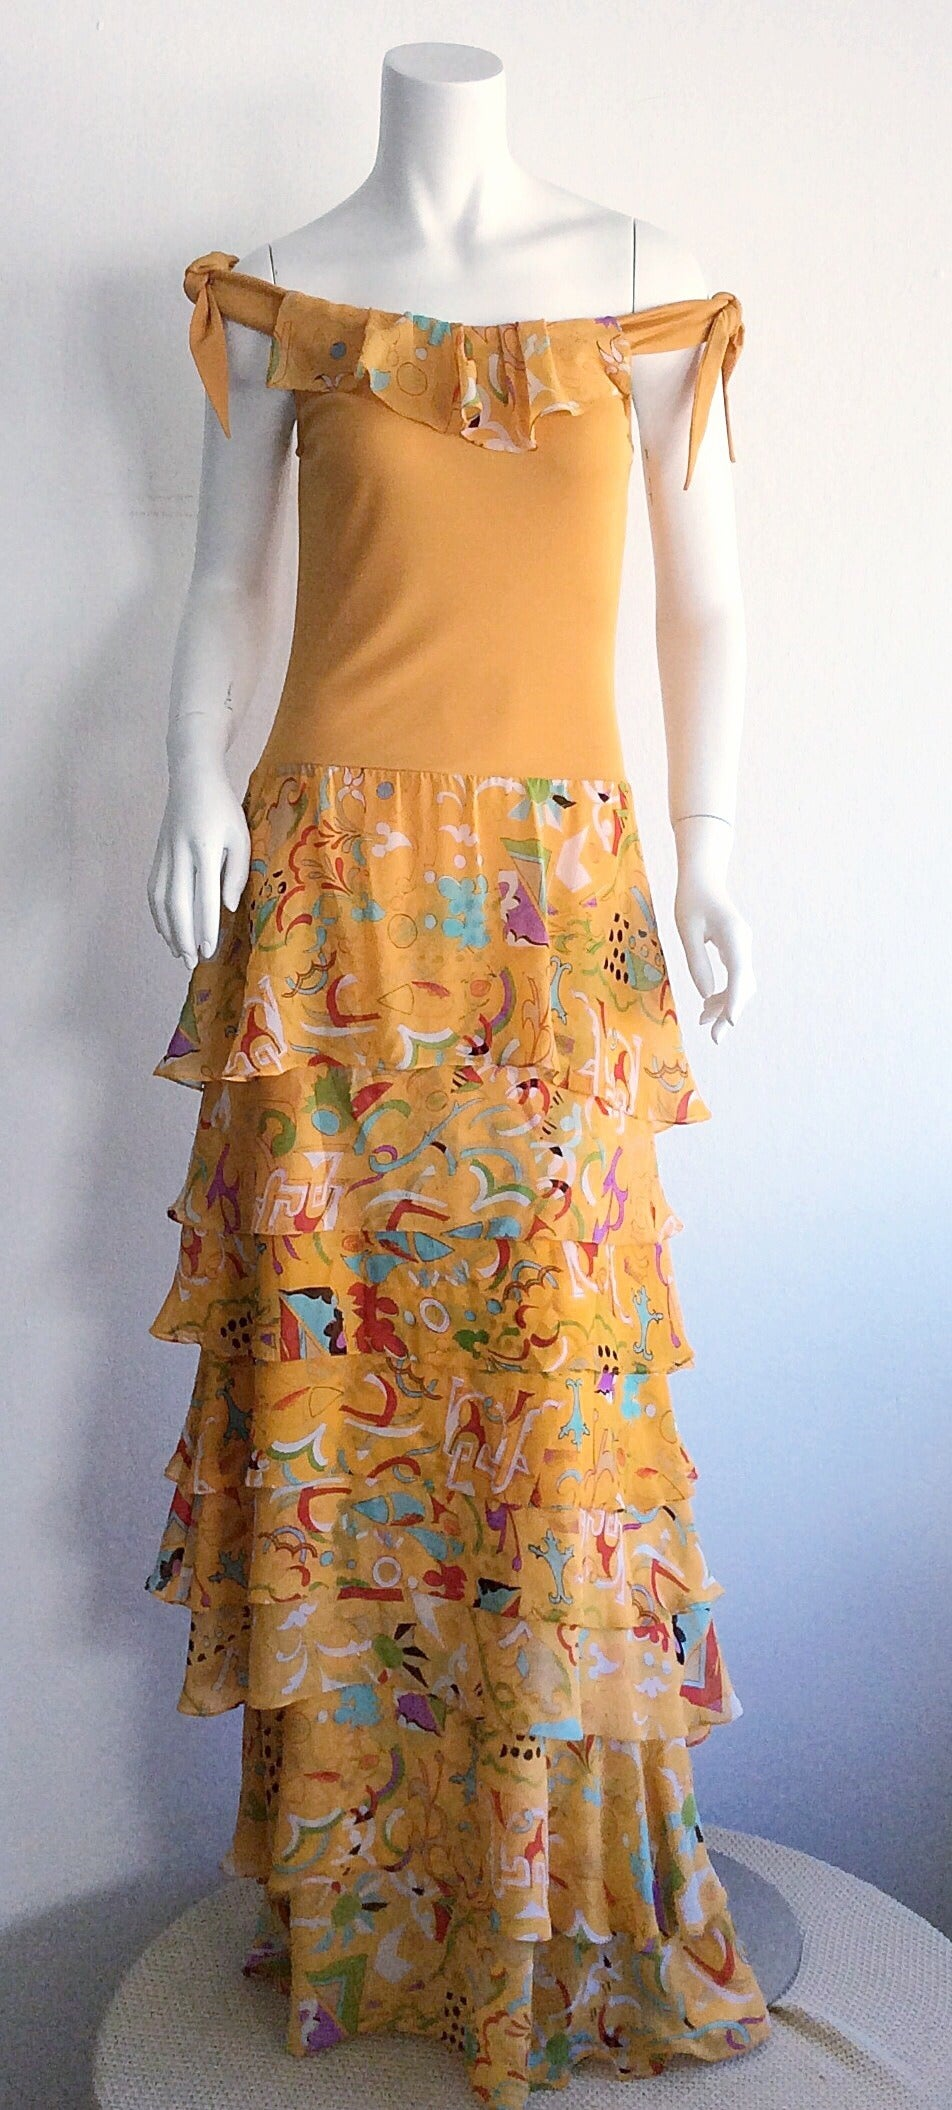 Incredible 1970s Stephen Burrows Jersey Maxi Dress Silk Tiered Skirt Brand New For Sale 2